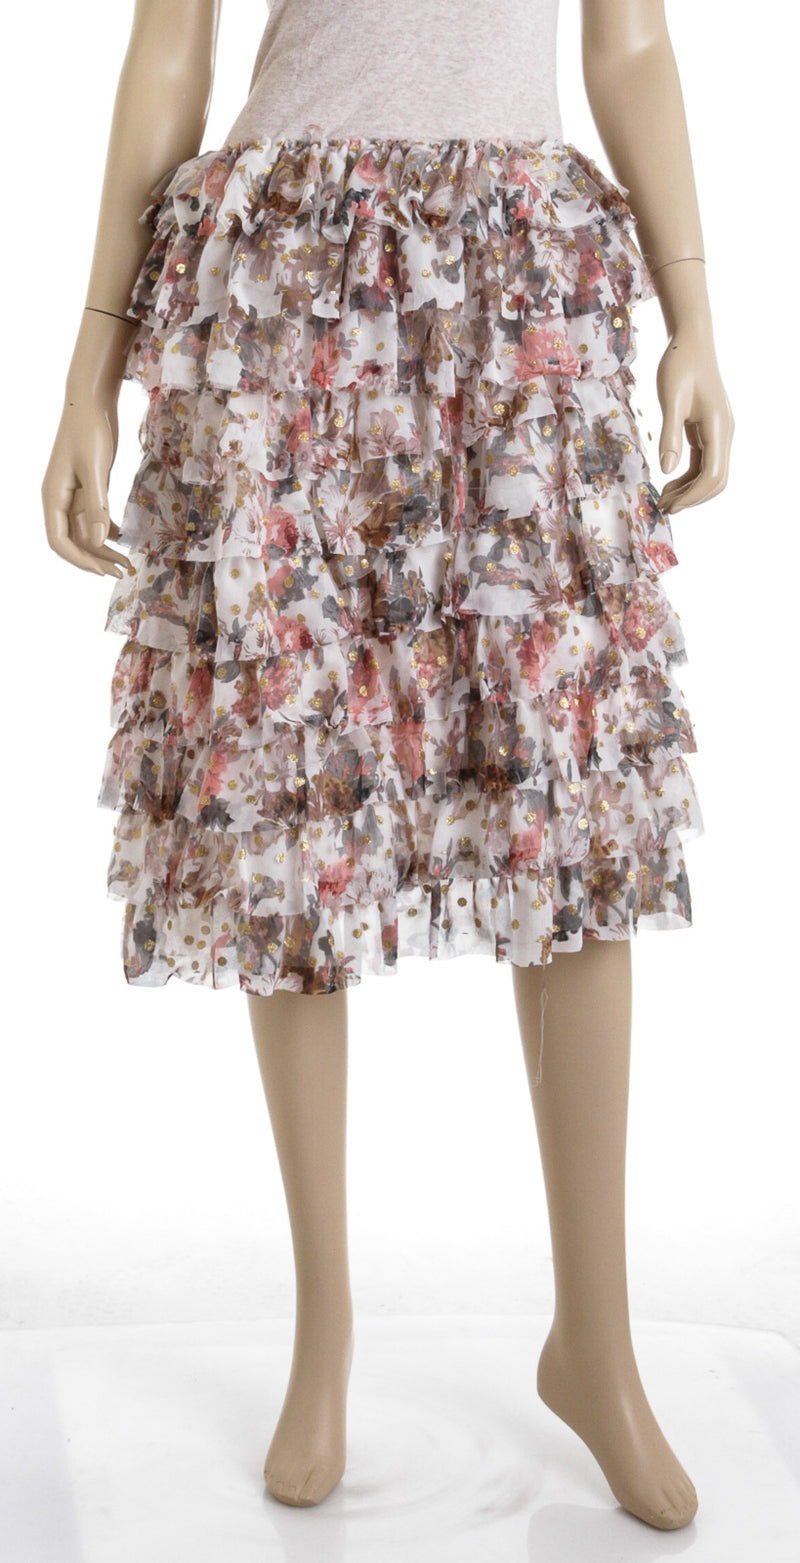 L'Atiste Floral Ruffle Mini Skirt (Size S)